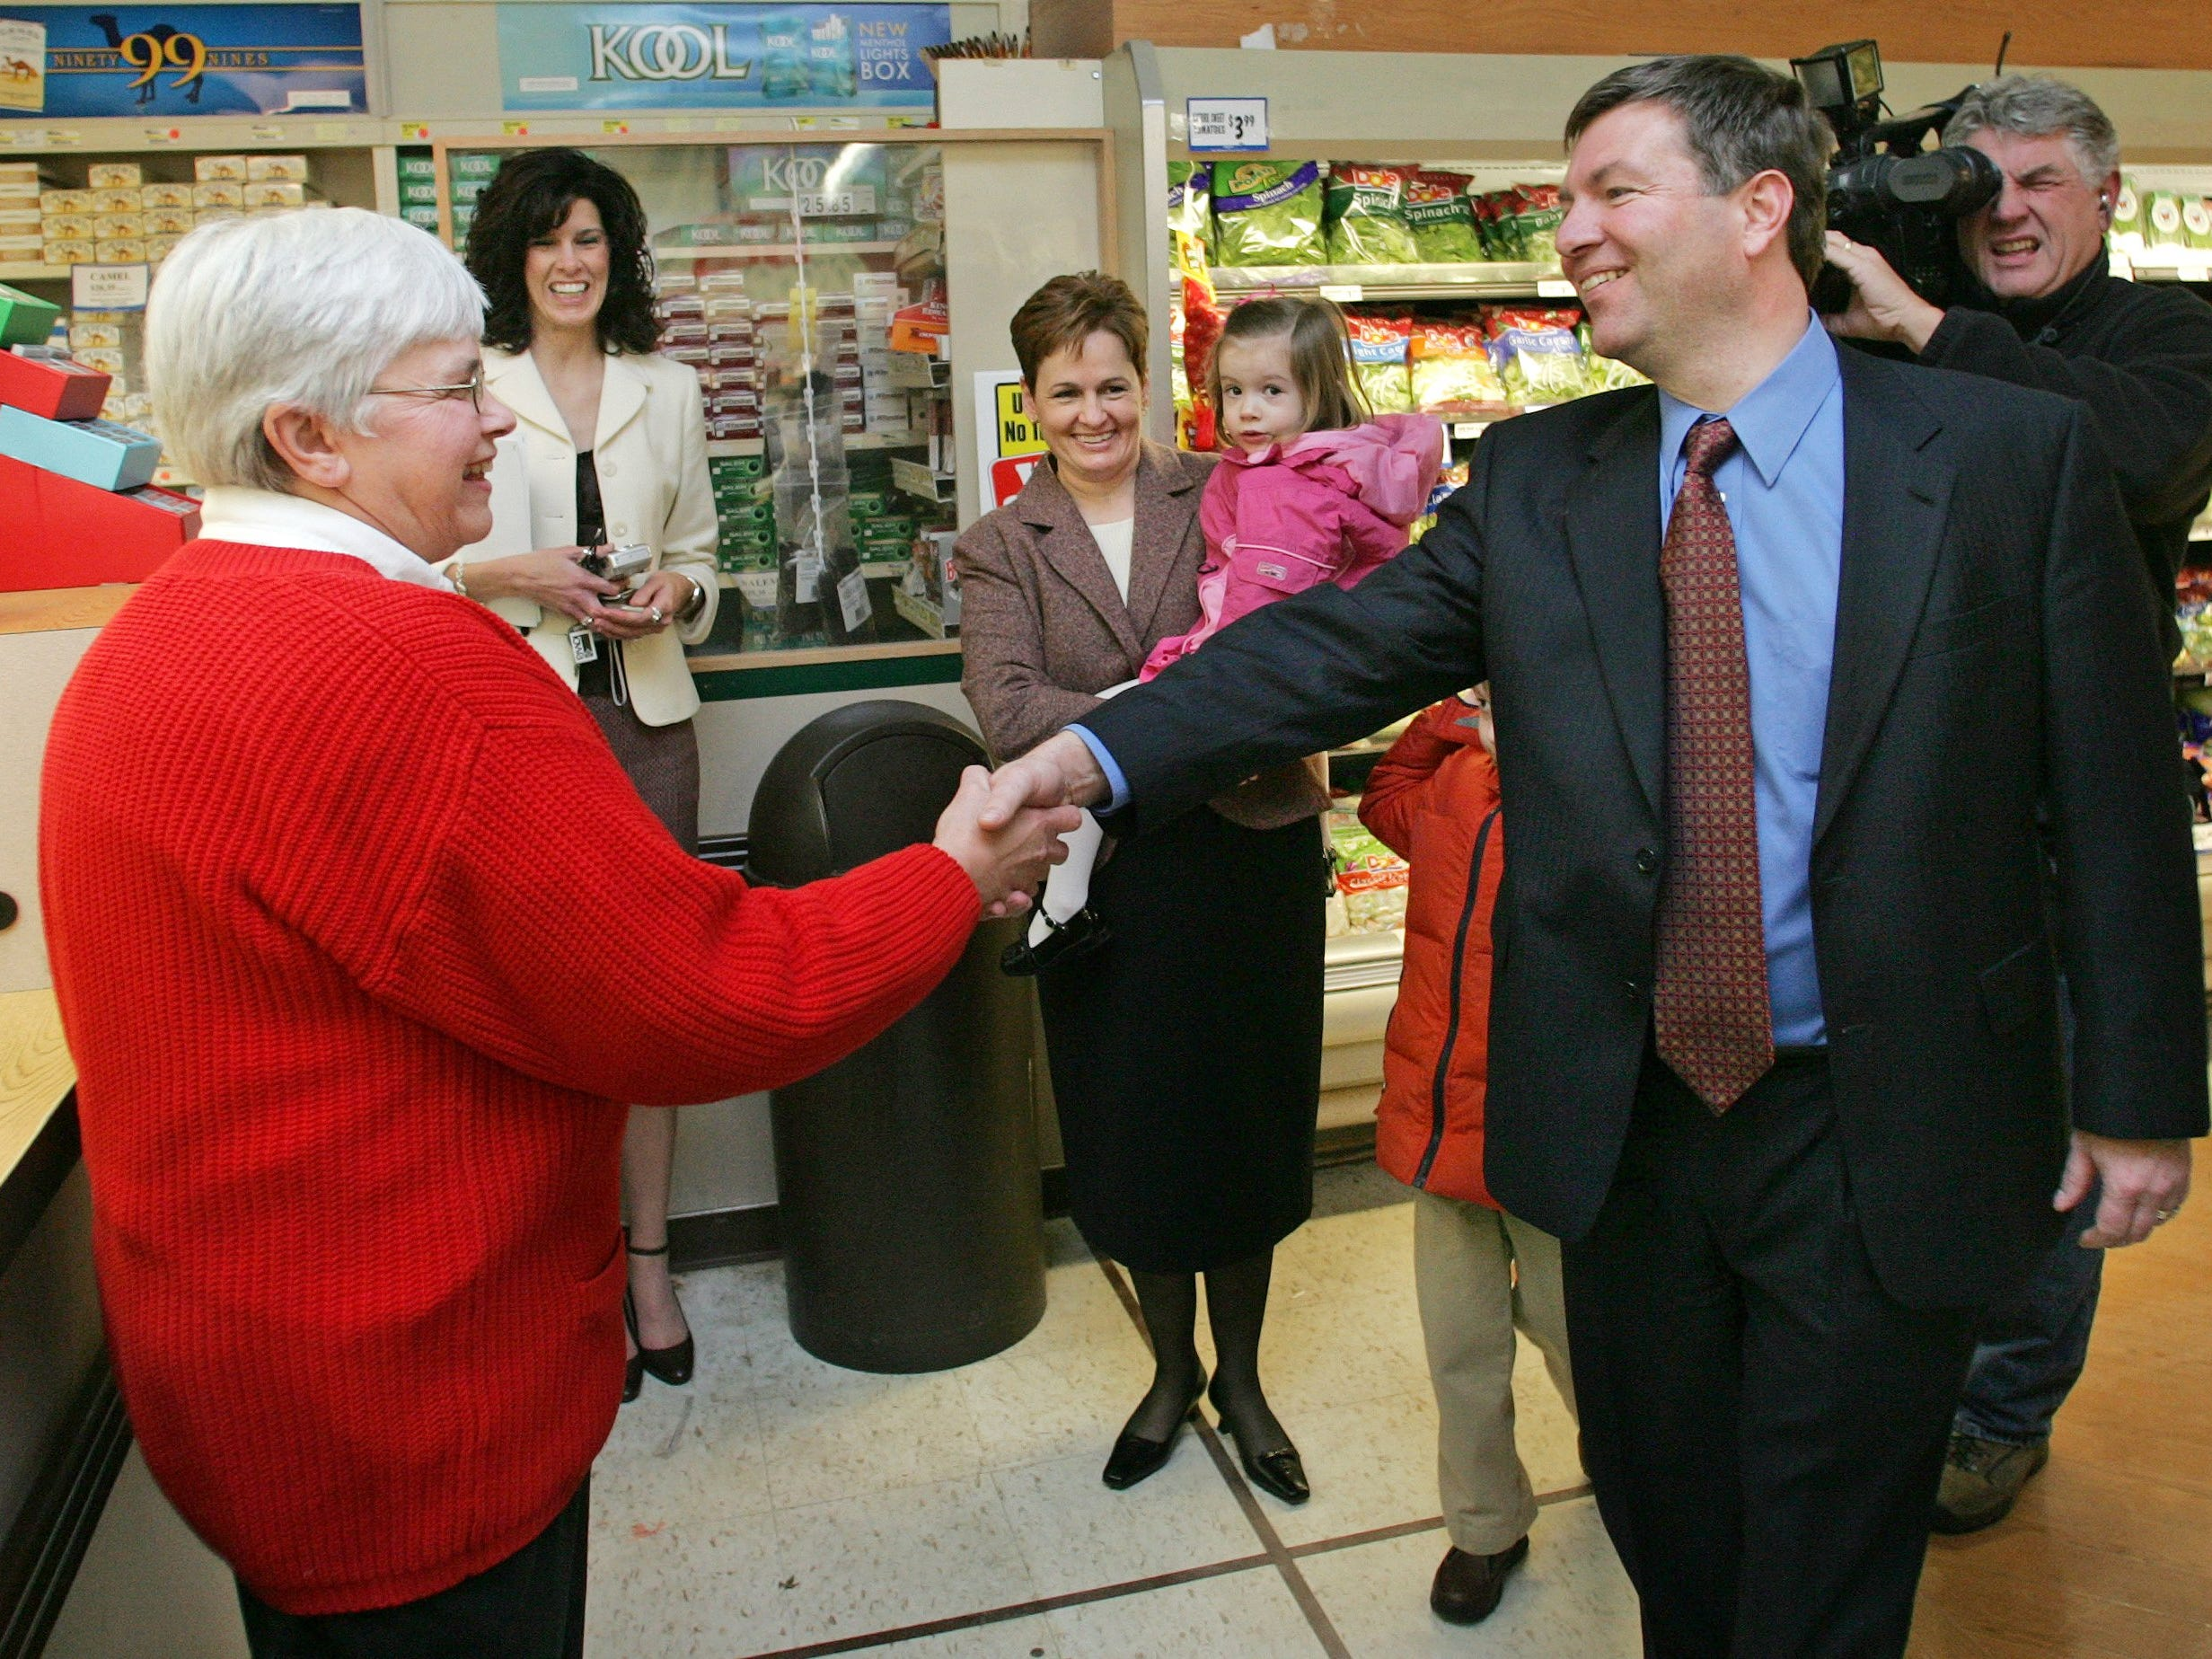 January 2006: Des Moines' Hugh Hawkins won a Powerball jackpot prize worth $113.2 million. Hawkins shakes hands with Dixie Upenieks, a Dahl's clerk at the Beaverdale store who helped validate Hawkins' winning lottery ticket when he came in to check his numbers and discovered he had won the $113.2 million Powerball jackpot, at the time the largest lottery prize won in Iowa.